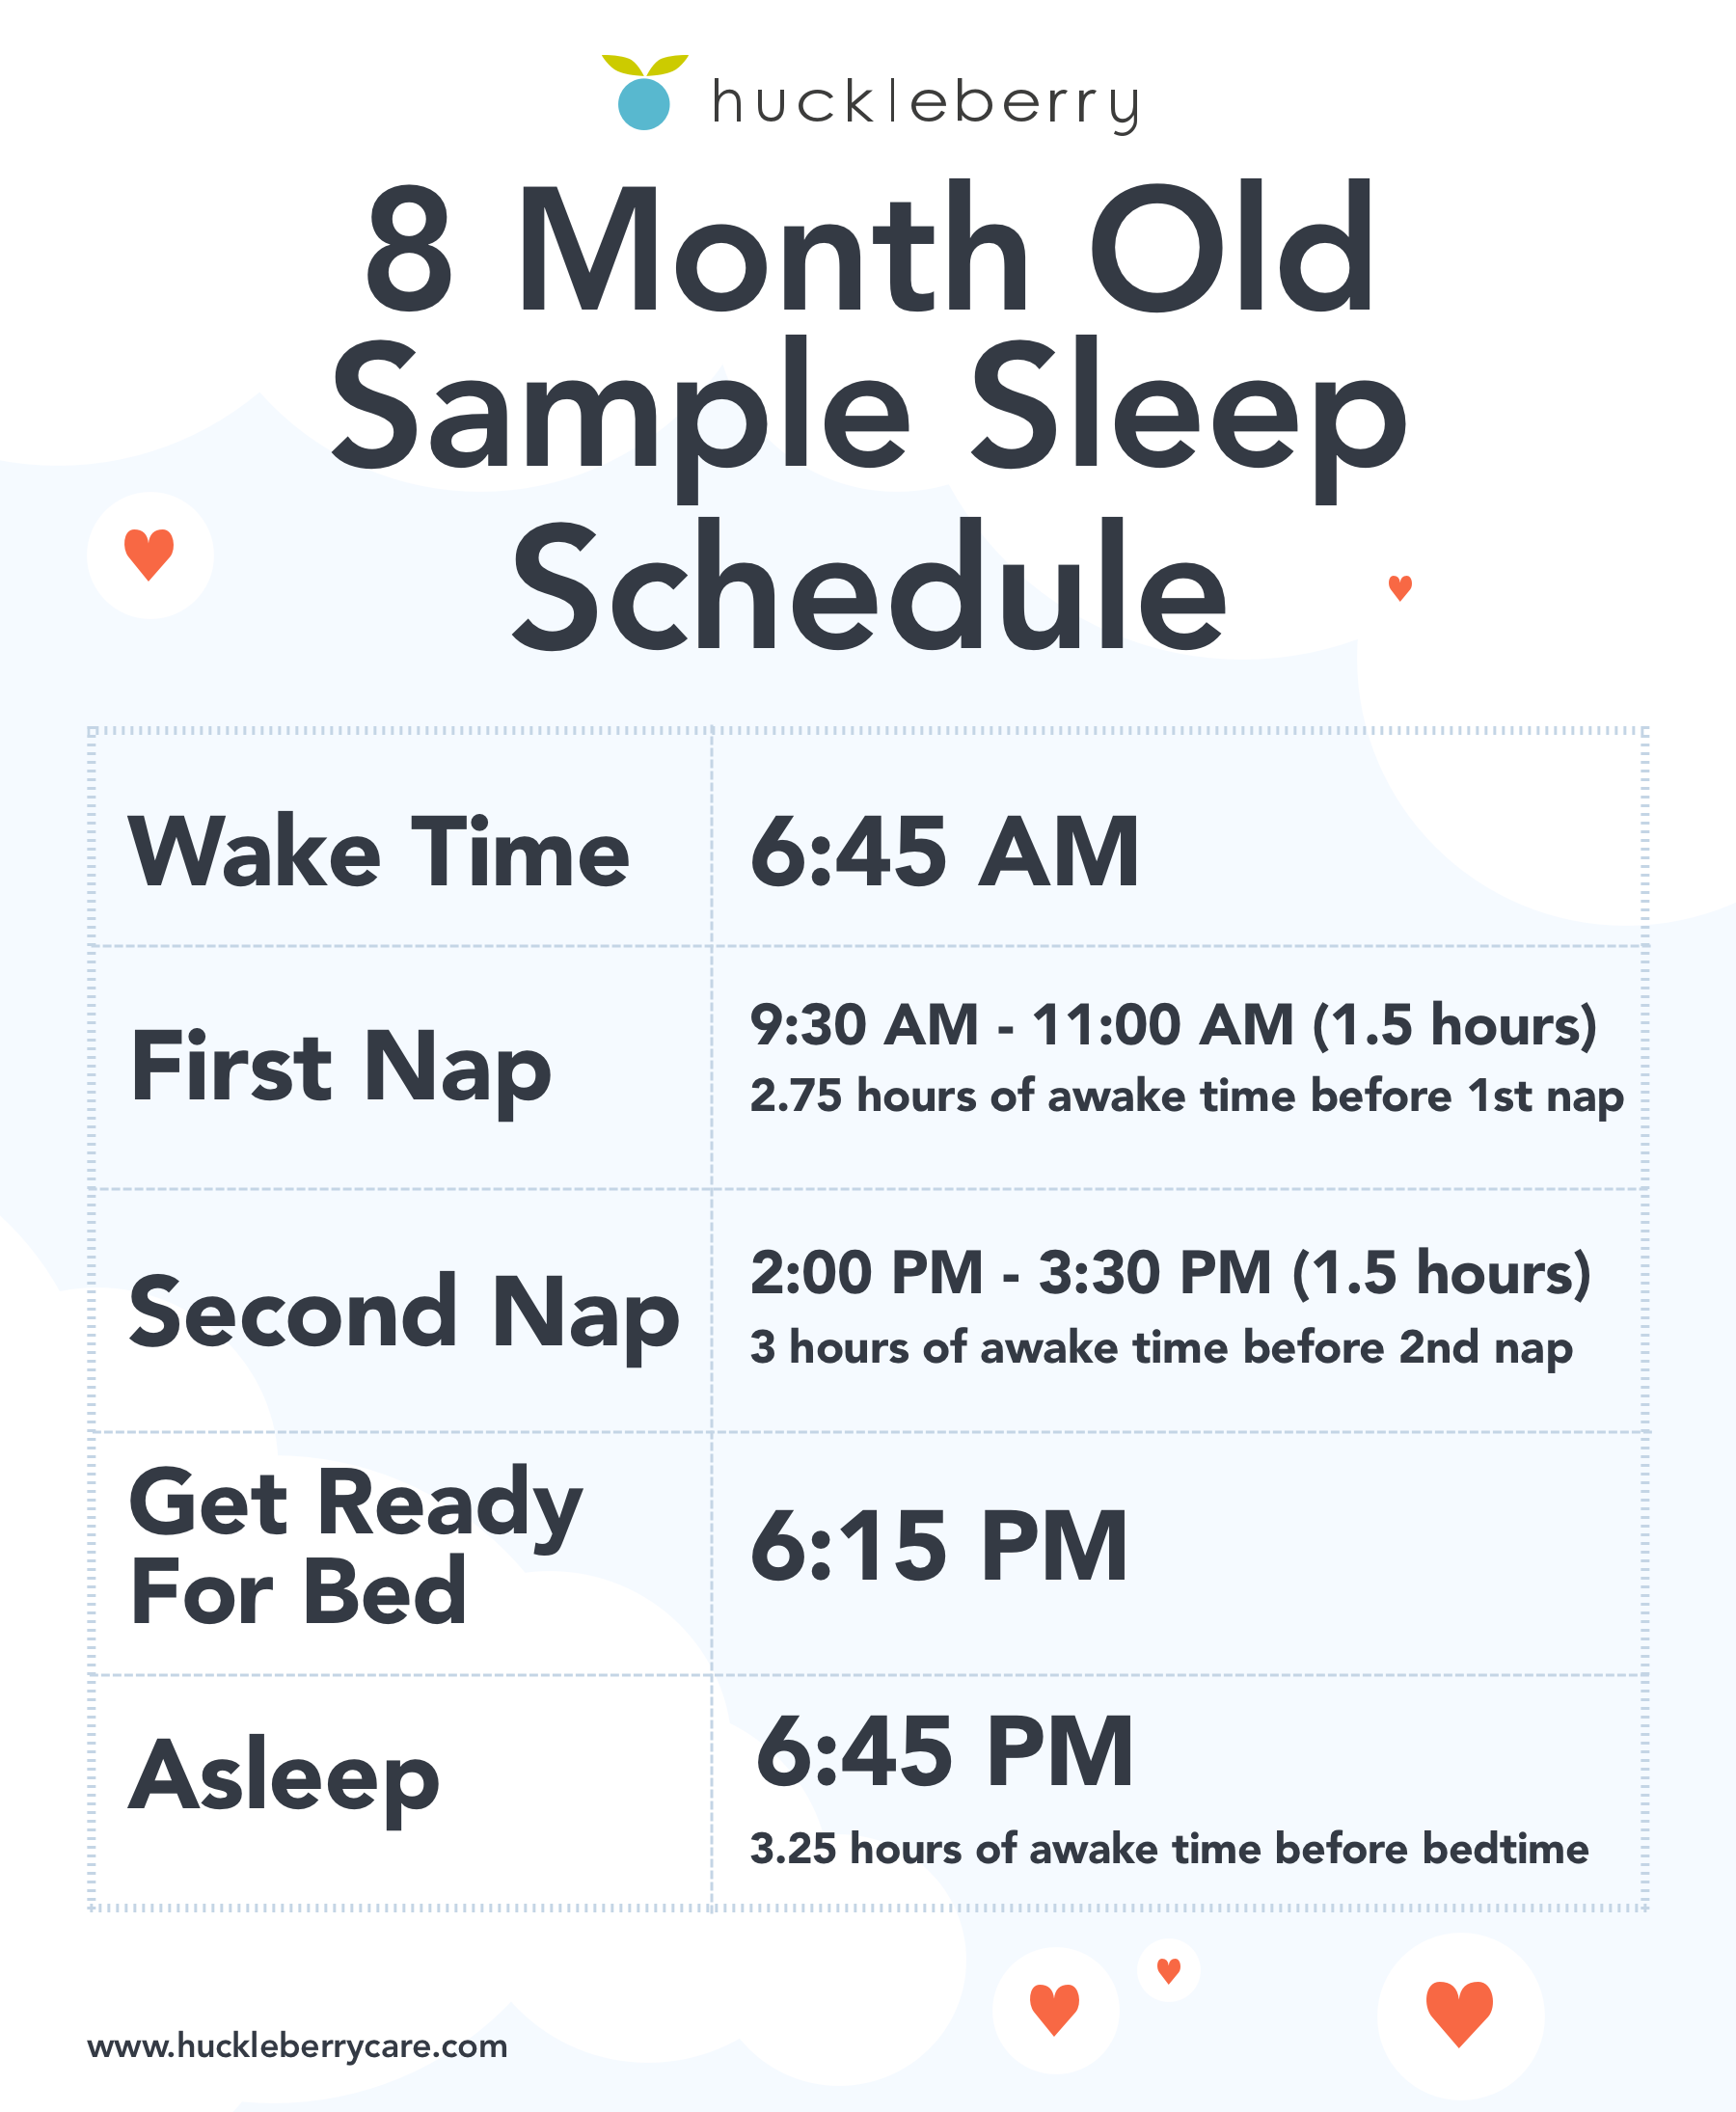 Huckleberry 8 Month Old Sleep Schedule